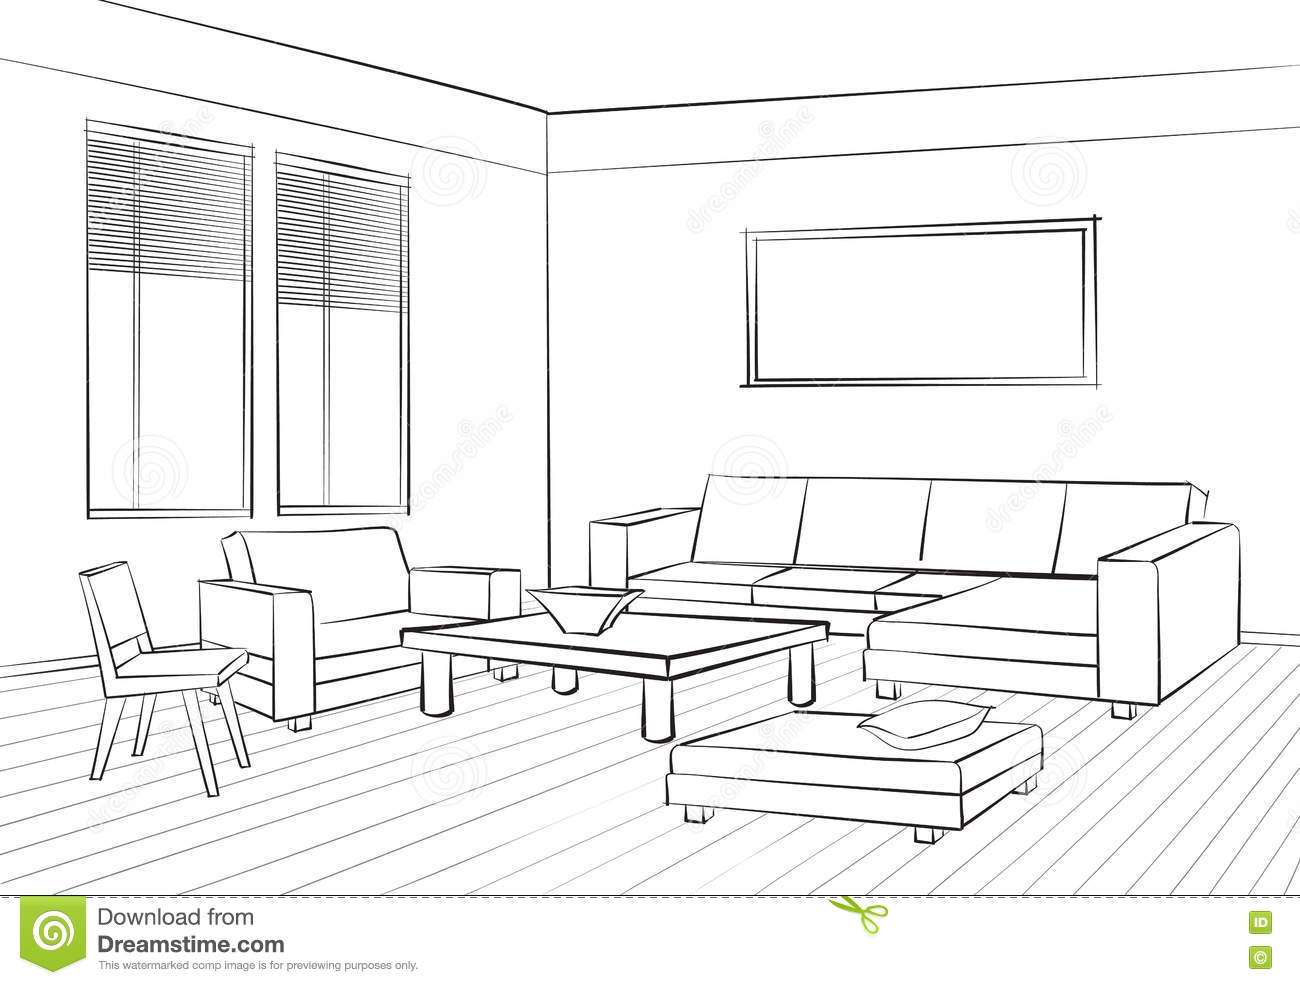 Living room design room interior sketch interior furniture for Home interior drawing room